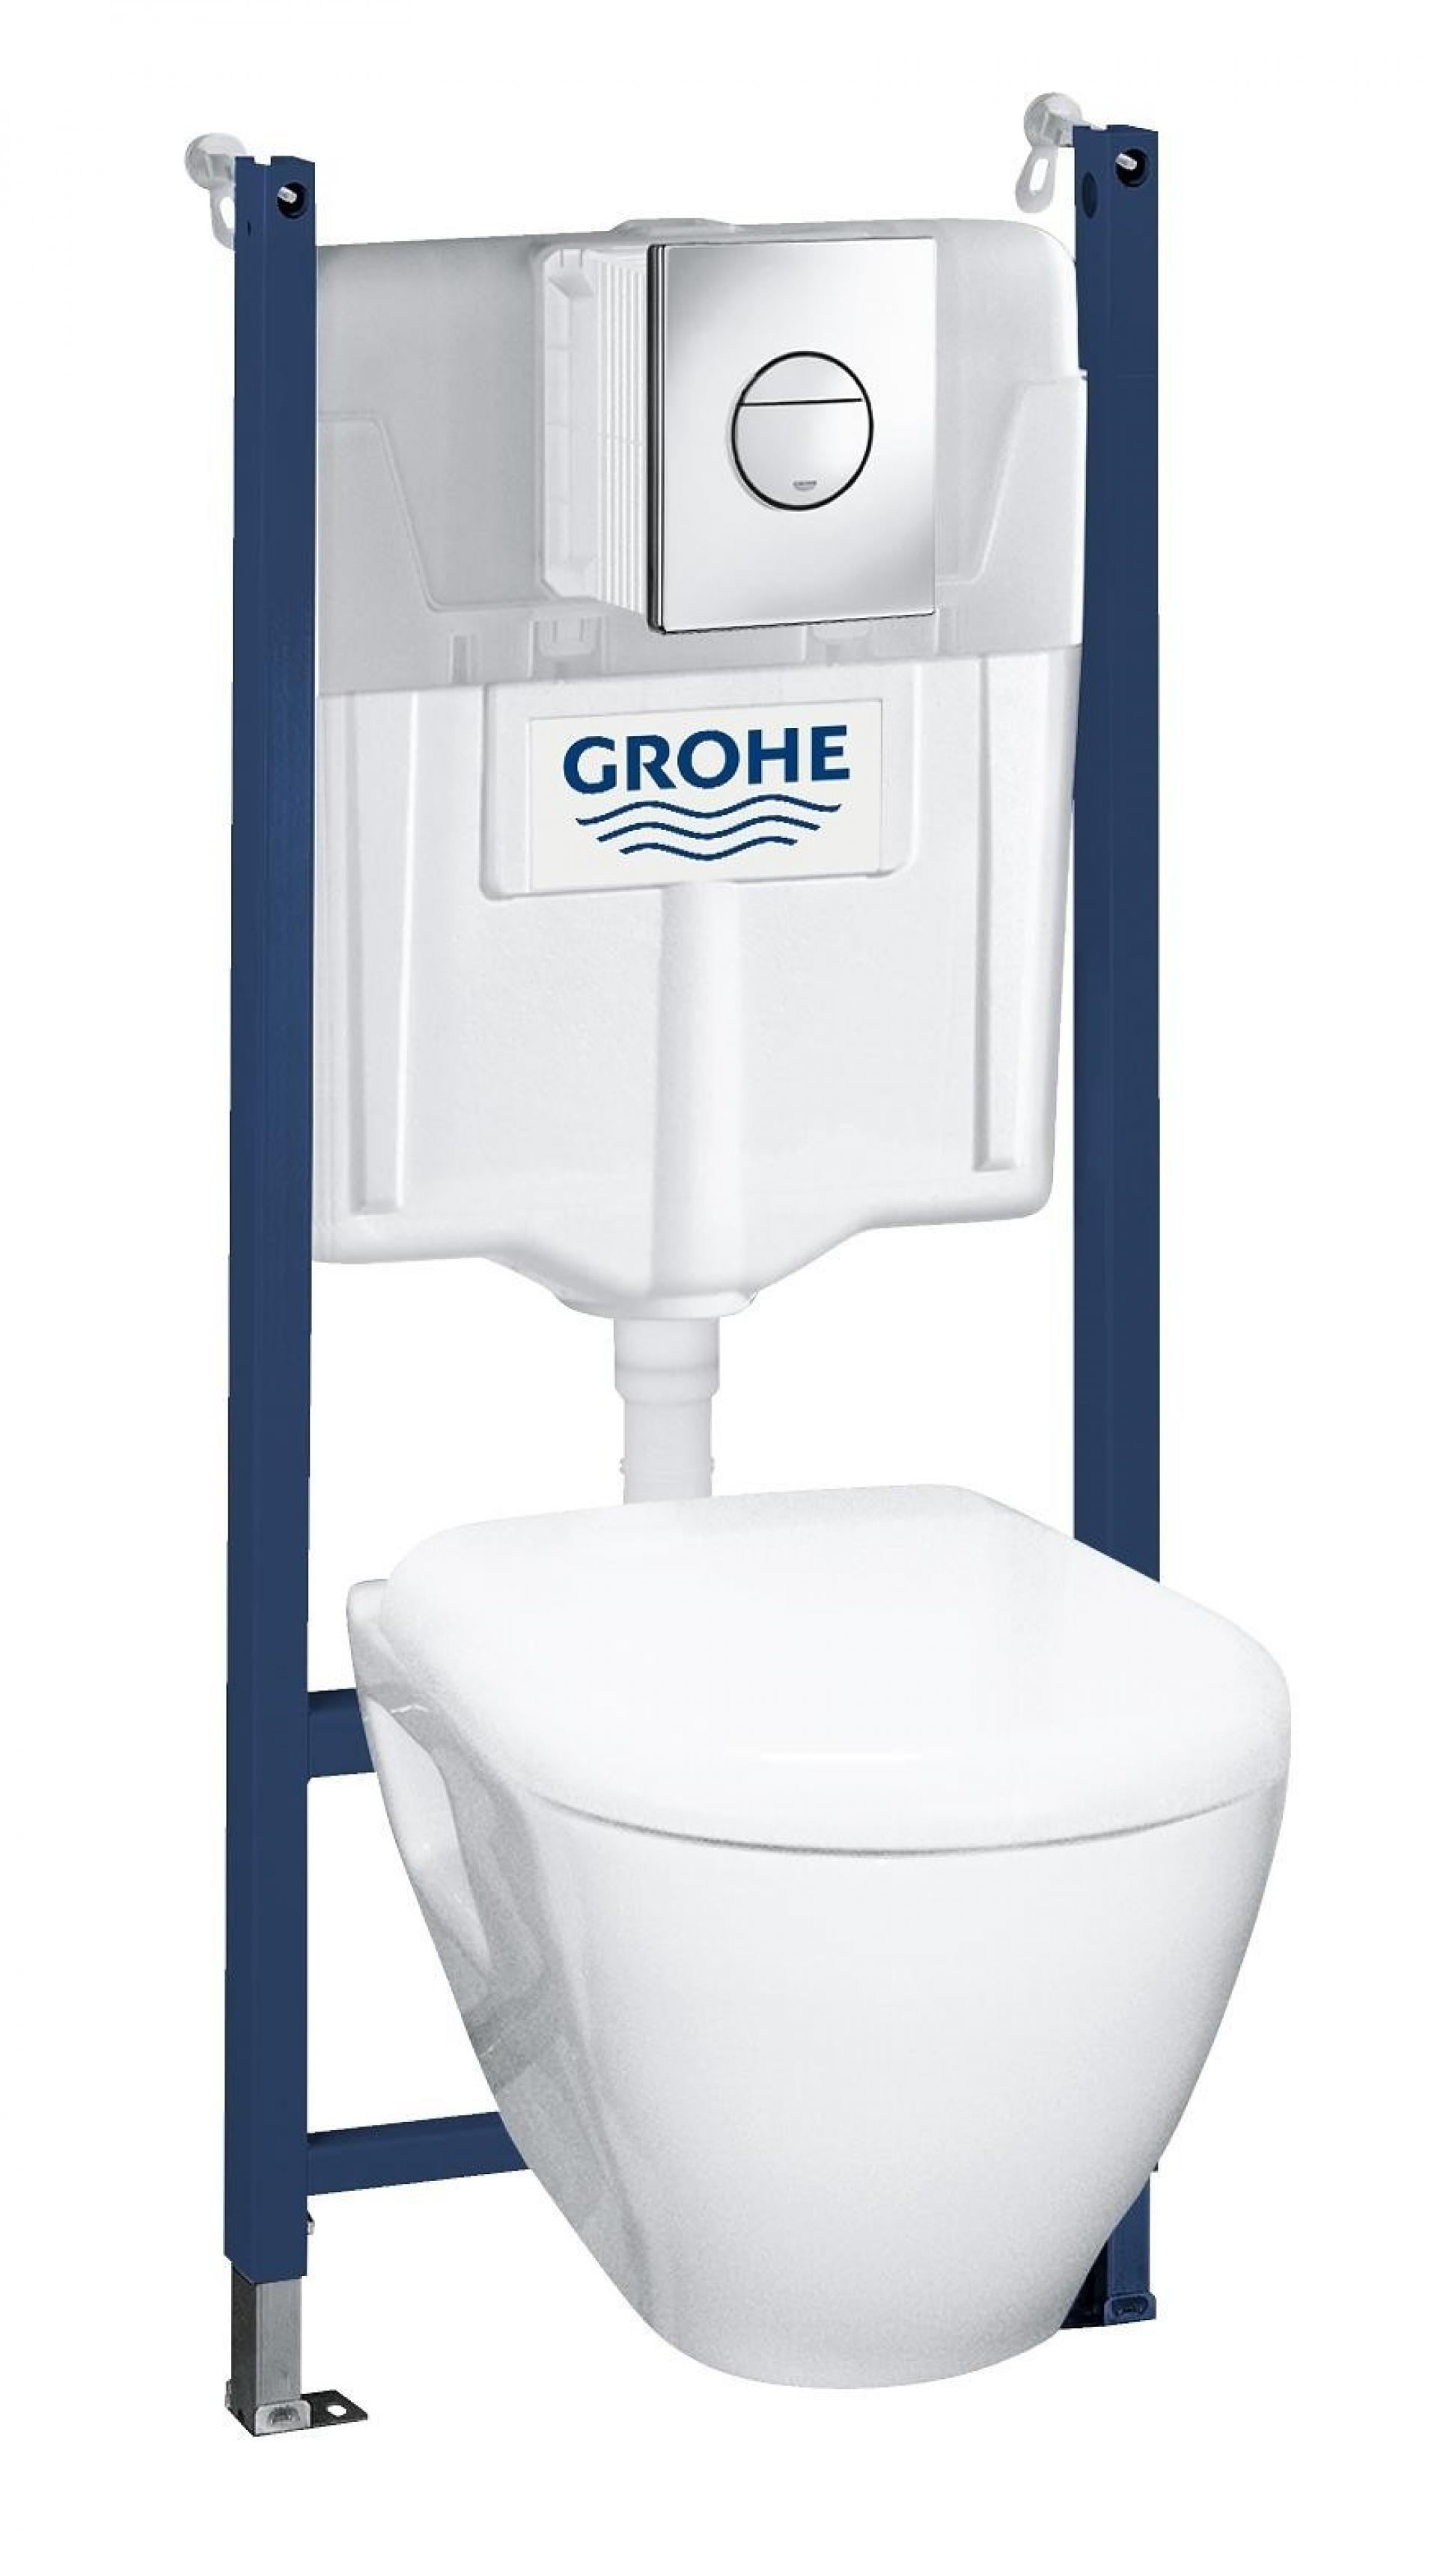 Инсталляция с унитазом и клавишей с сиденьем микролифт  Grohe Solido Ceramic 38950000